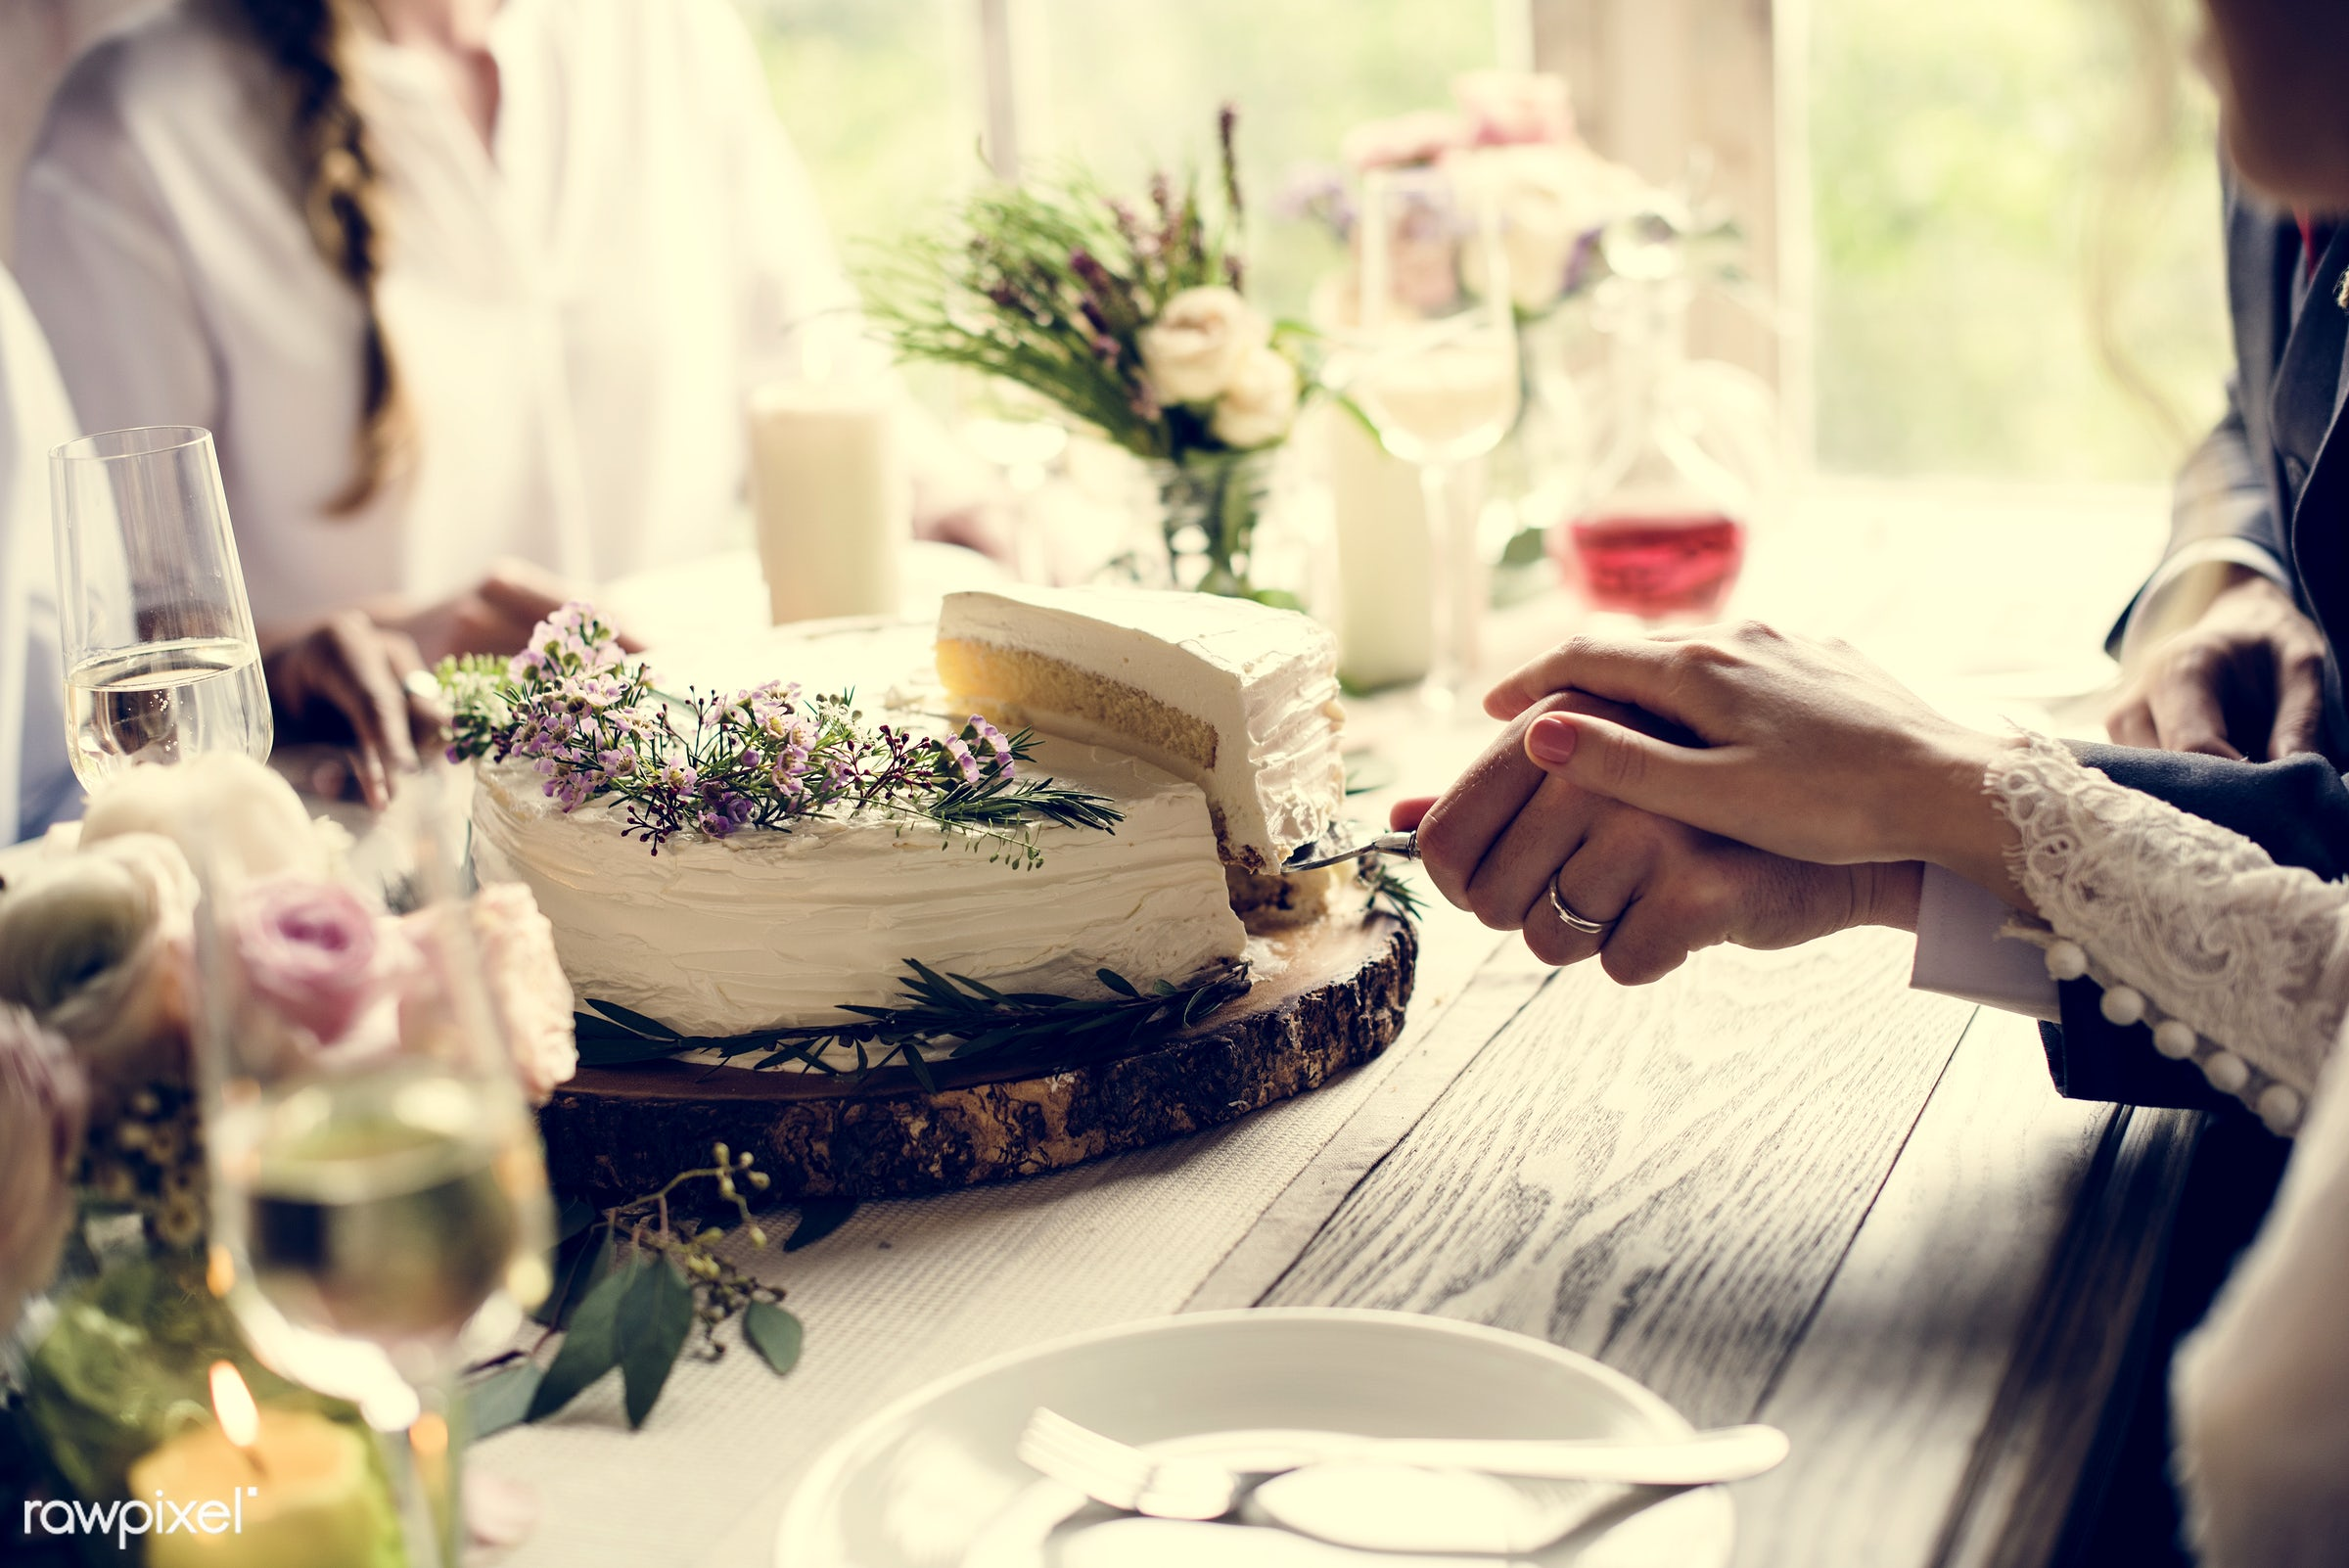 wedding, bonding, bride, cake, ceremony, connection, couple, cutting, event, fondness, groom, hands, holding hand, husband,...